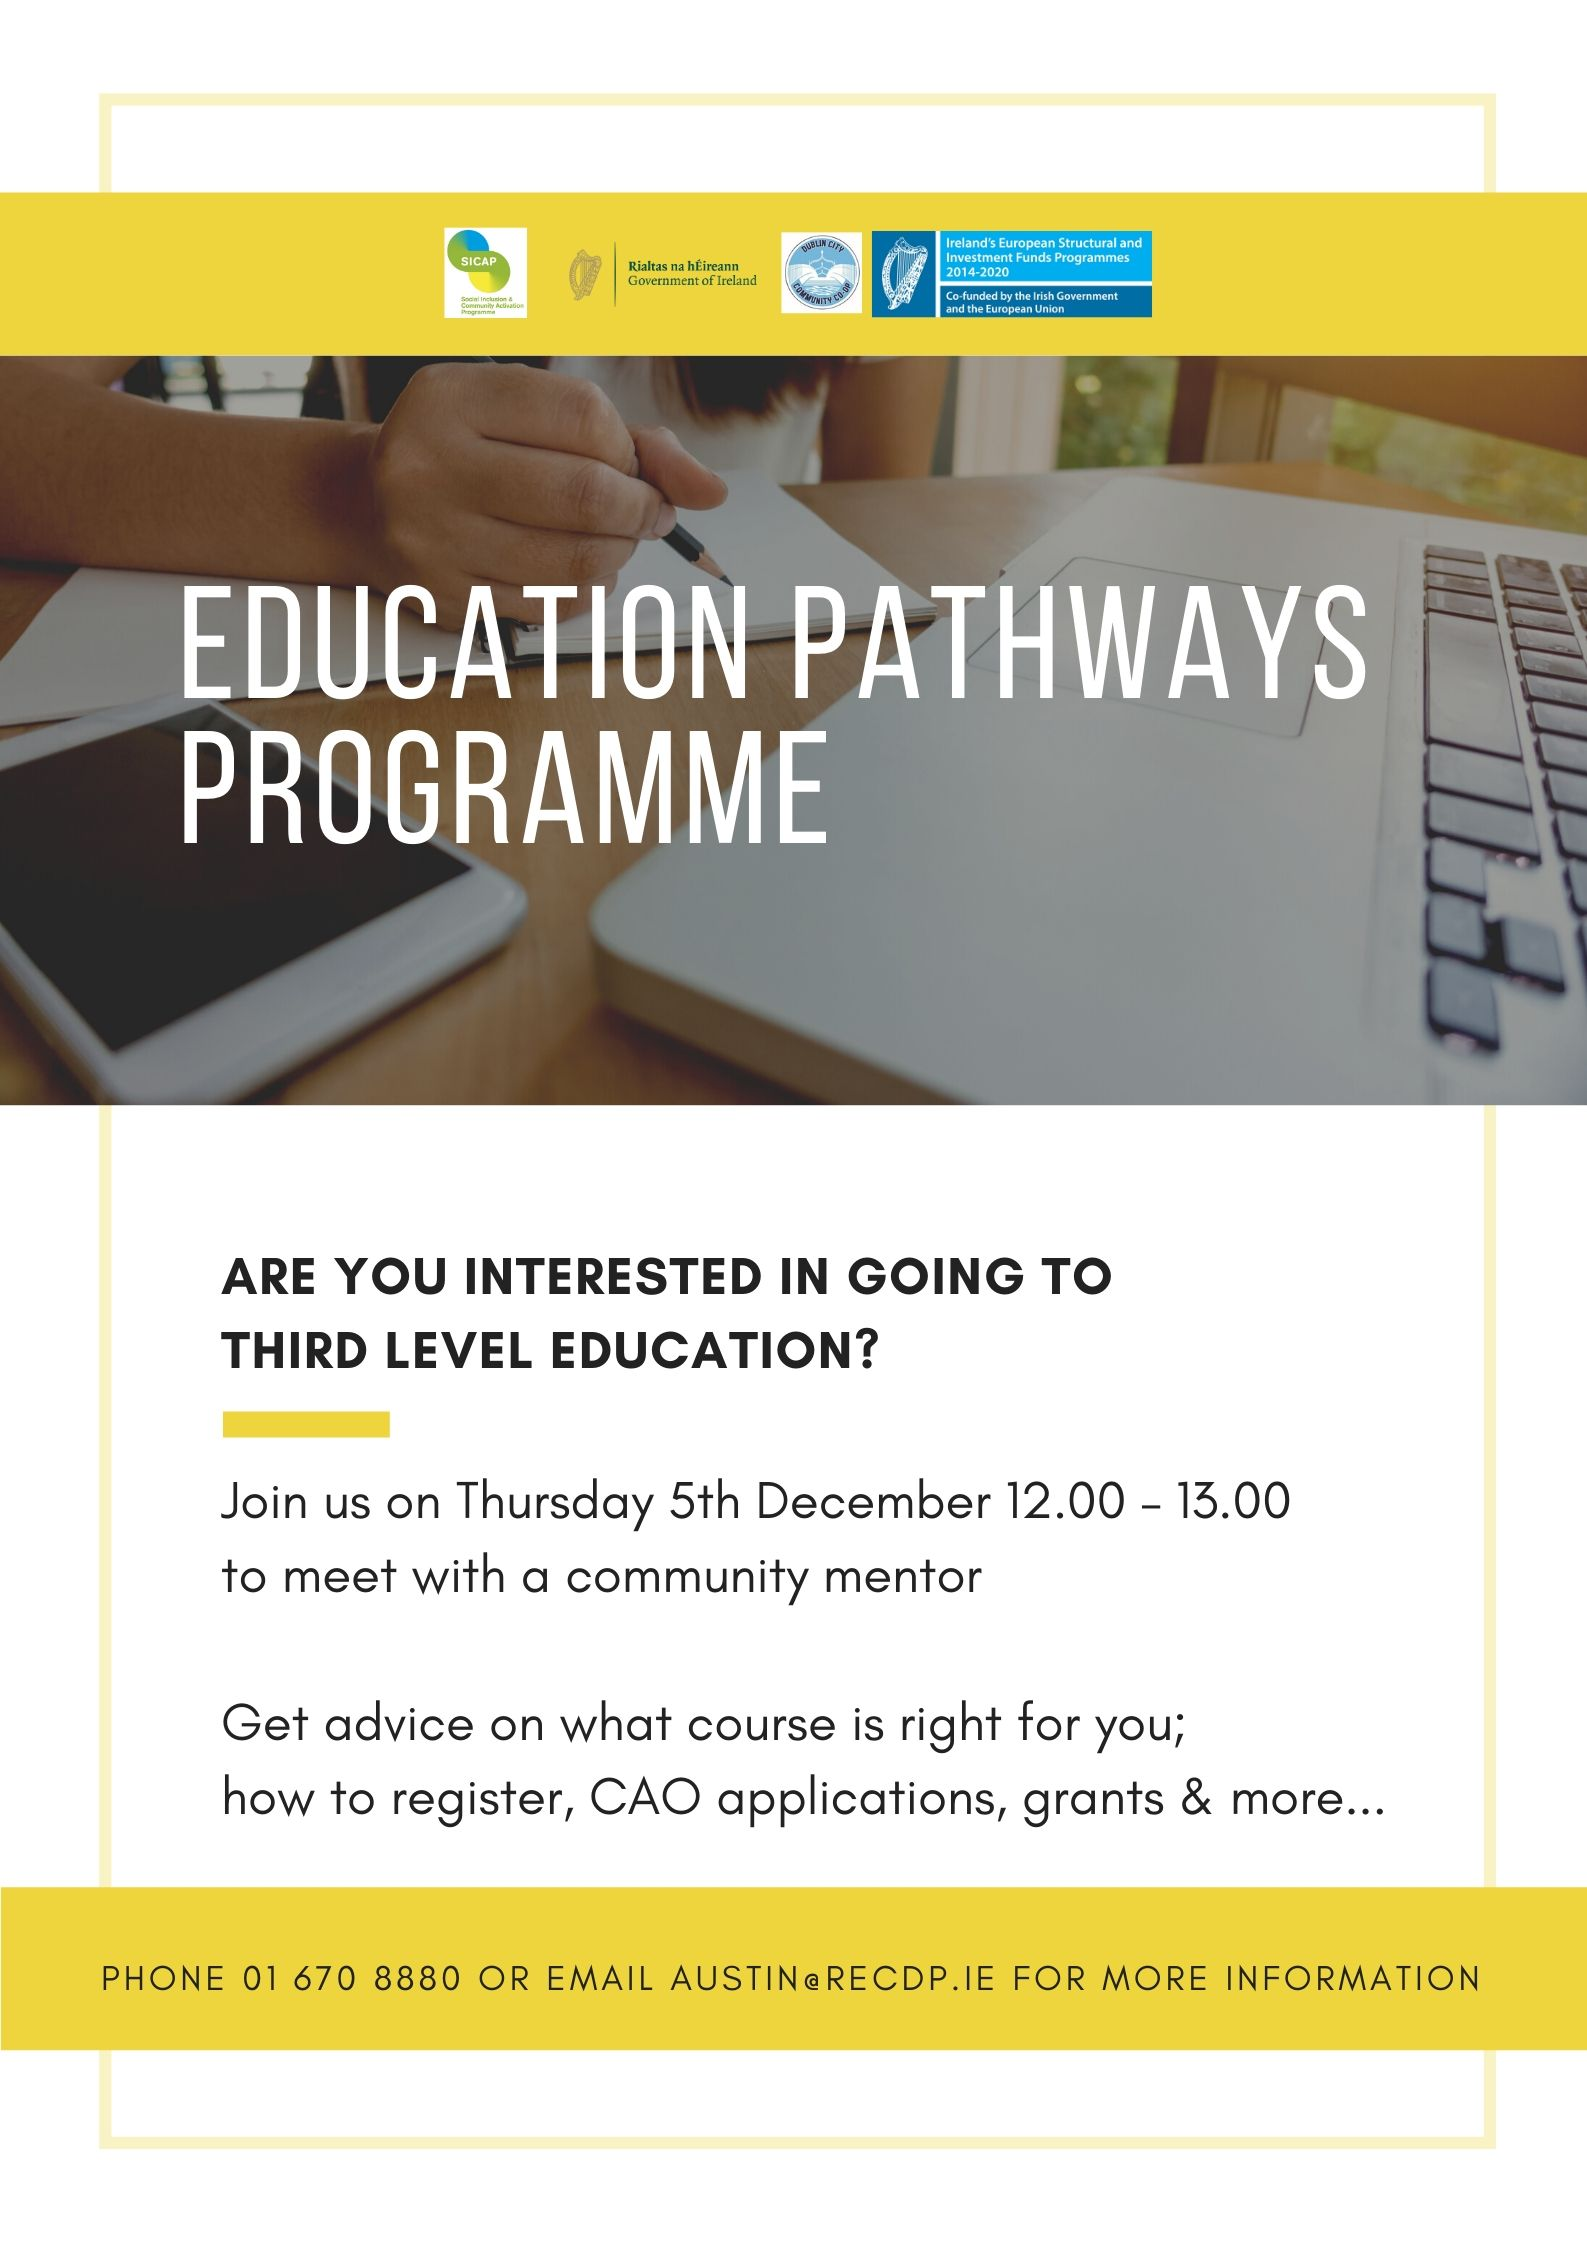 Education Pathways Programme 4jpg